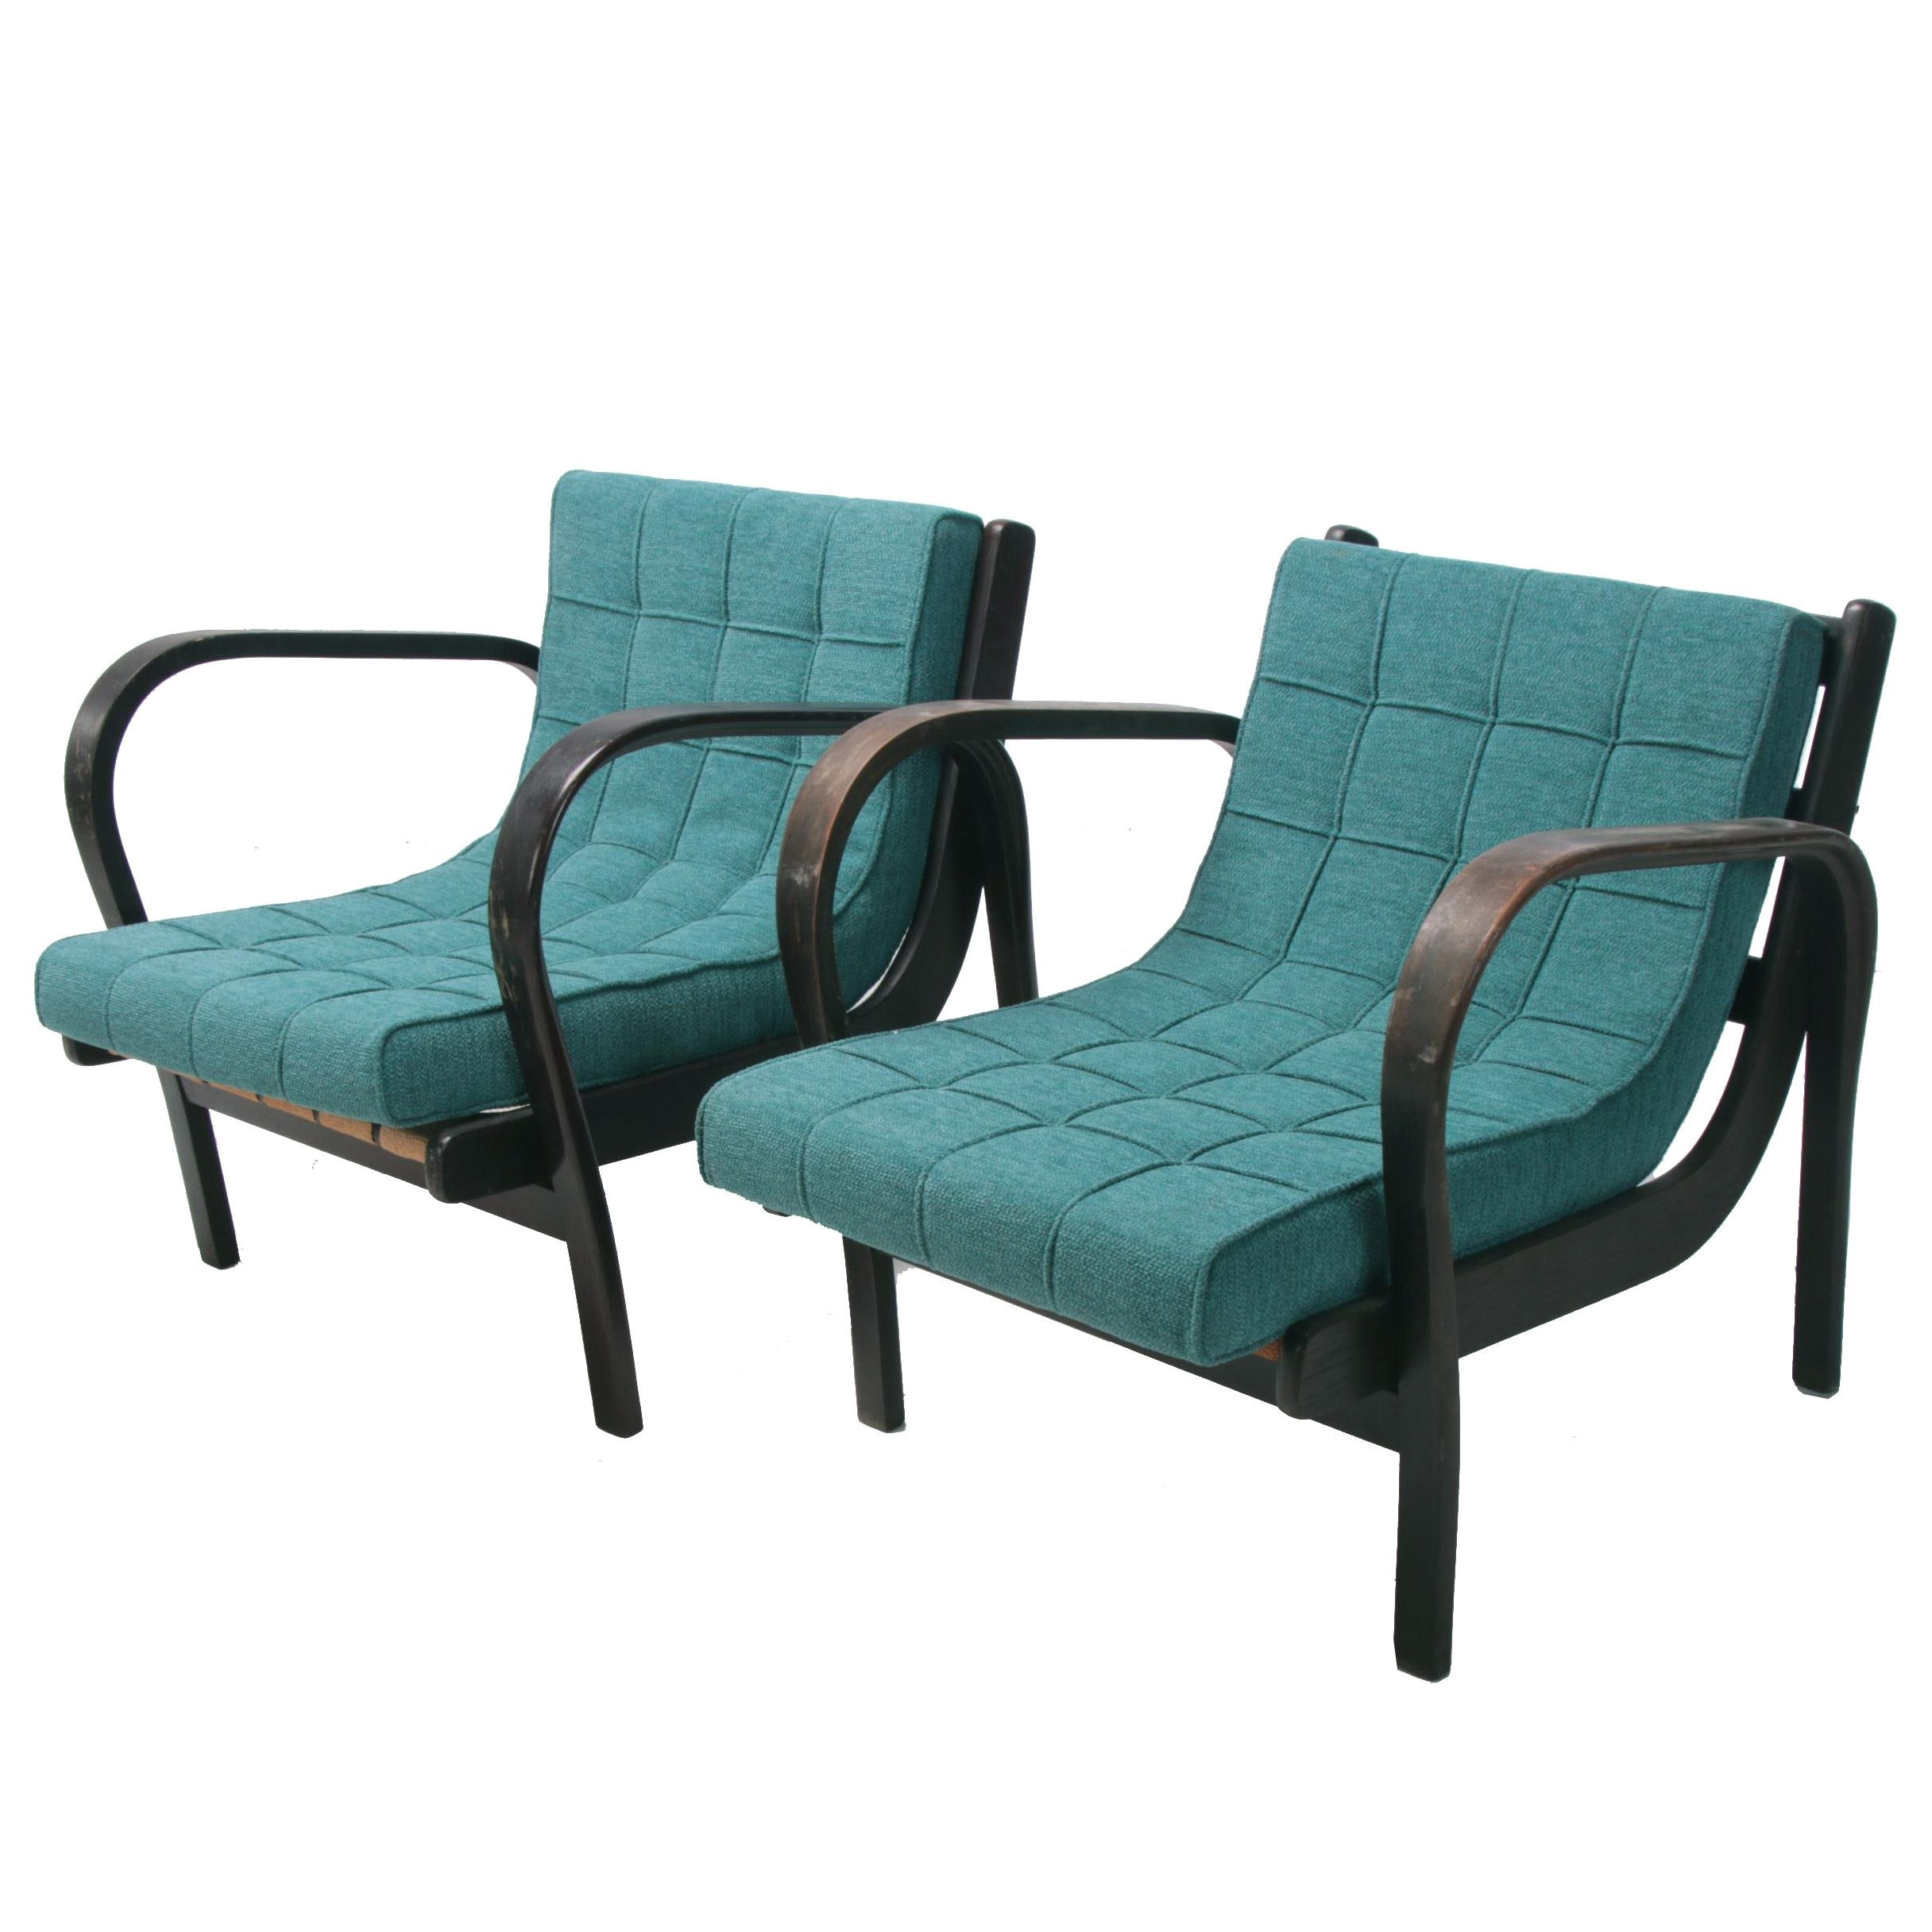 Pair of Czech Modern Bentwood Lounge Chairs, Early 20th Century